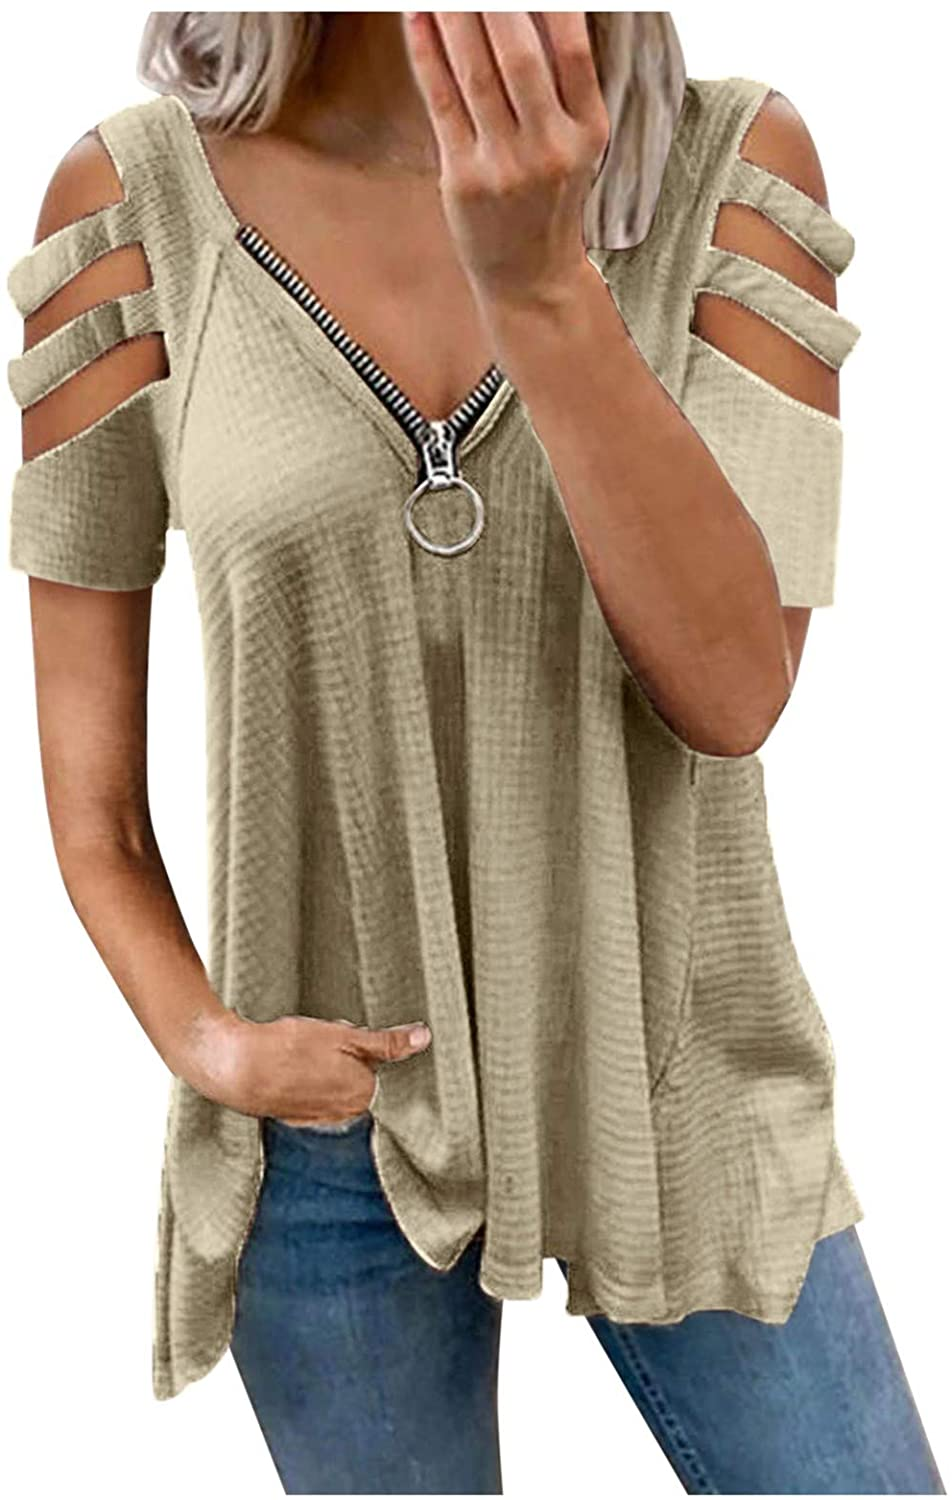 siilsaa Summer Tops for Women, Womens Solid Zipper V-Neck Short Sleeve T-Shirts Plus Size Tops Blouse Basic Tunic Tee